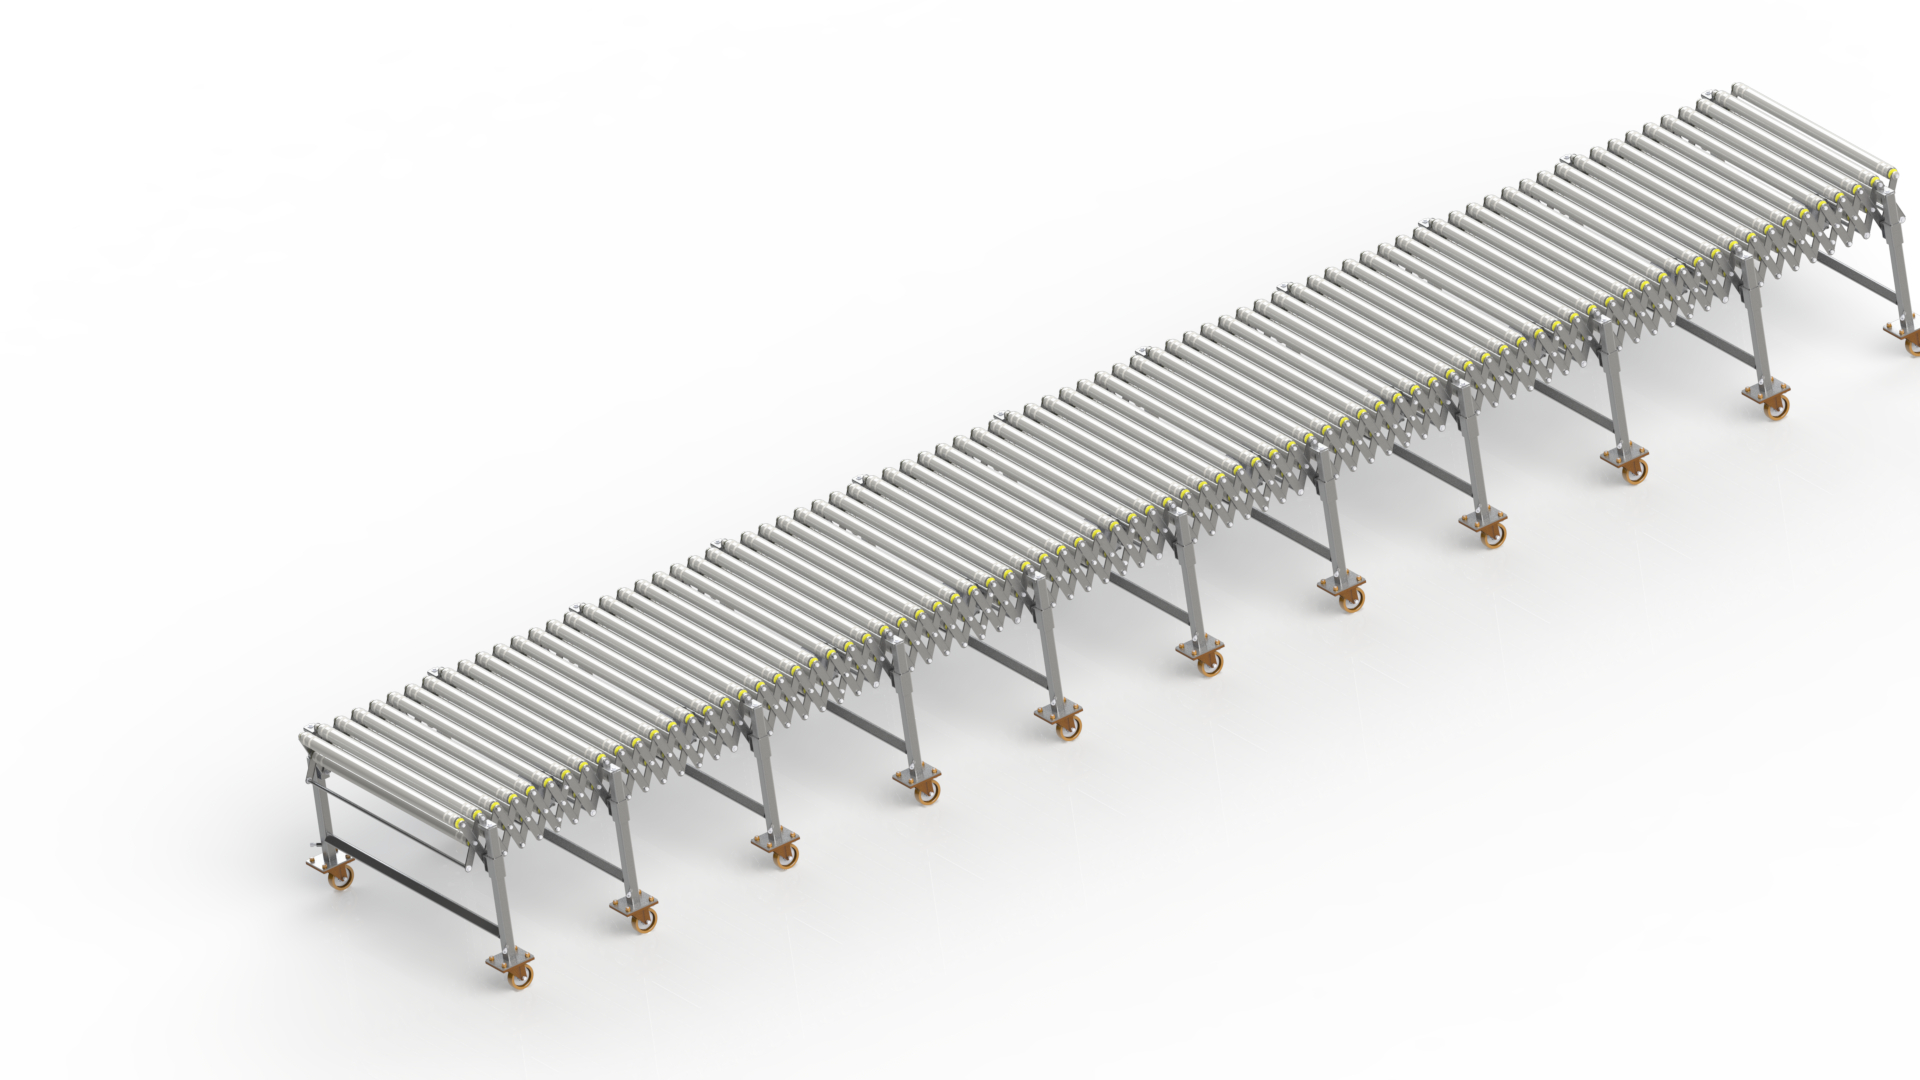 Untitled1 - Accordion Conveyor